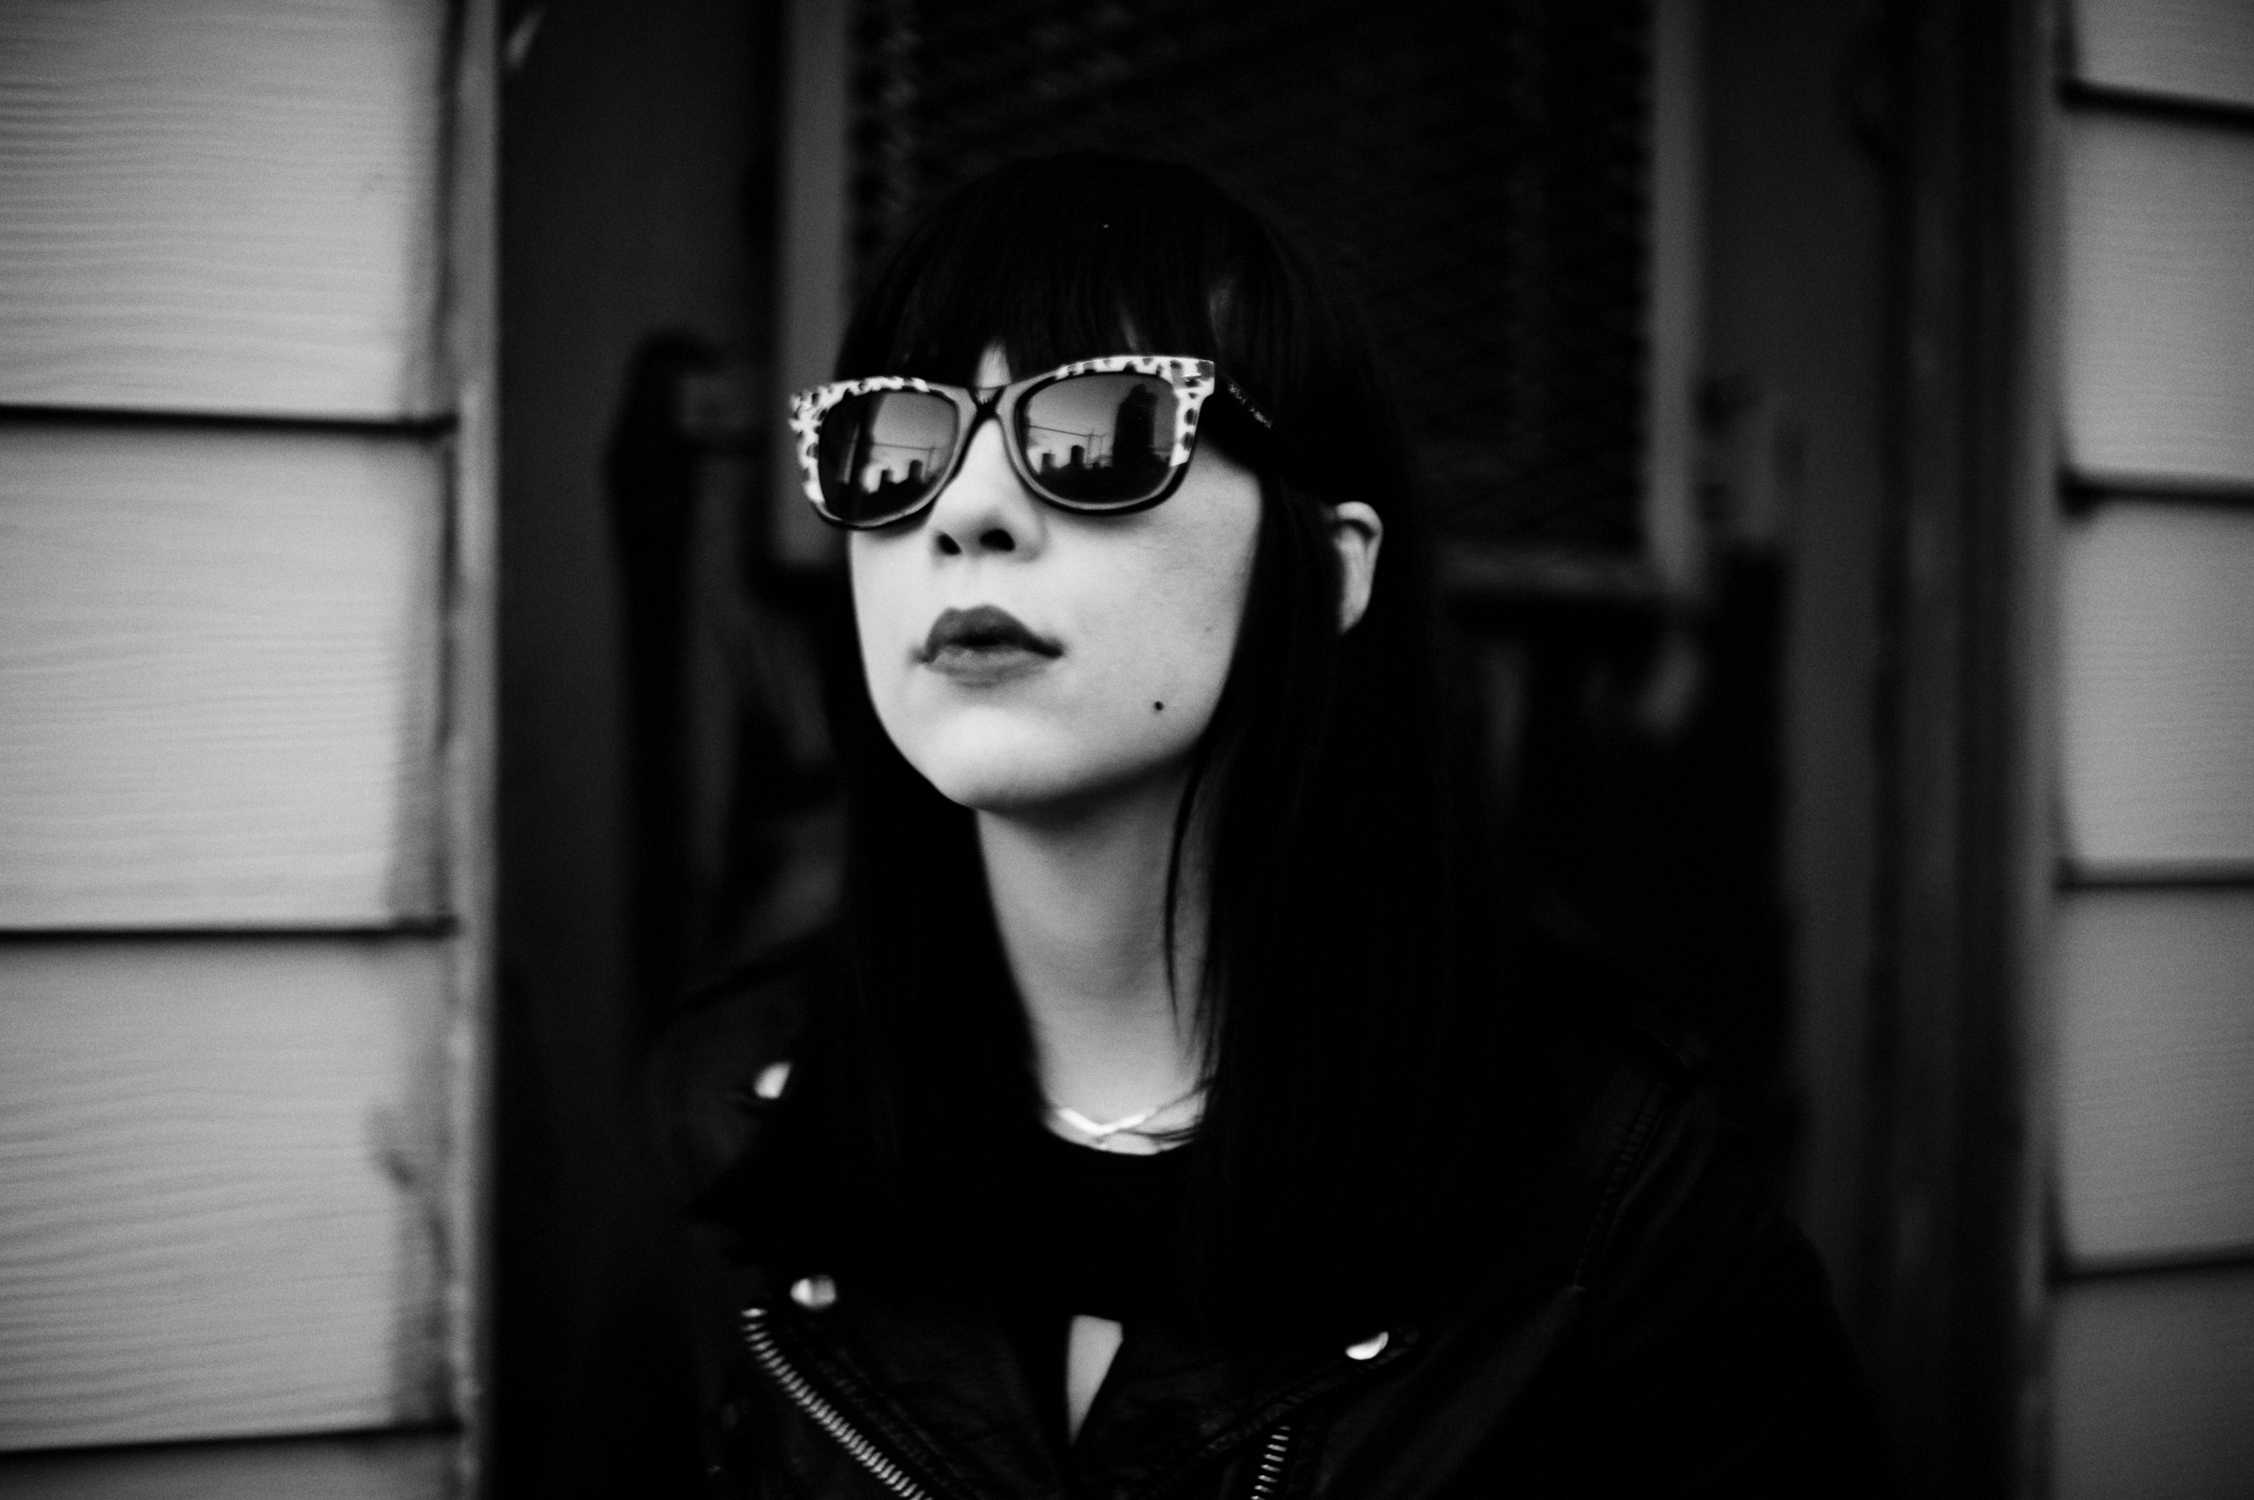 """Free MP3 Download From Dum Dum Girls: """"Coming Down"""" 